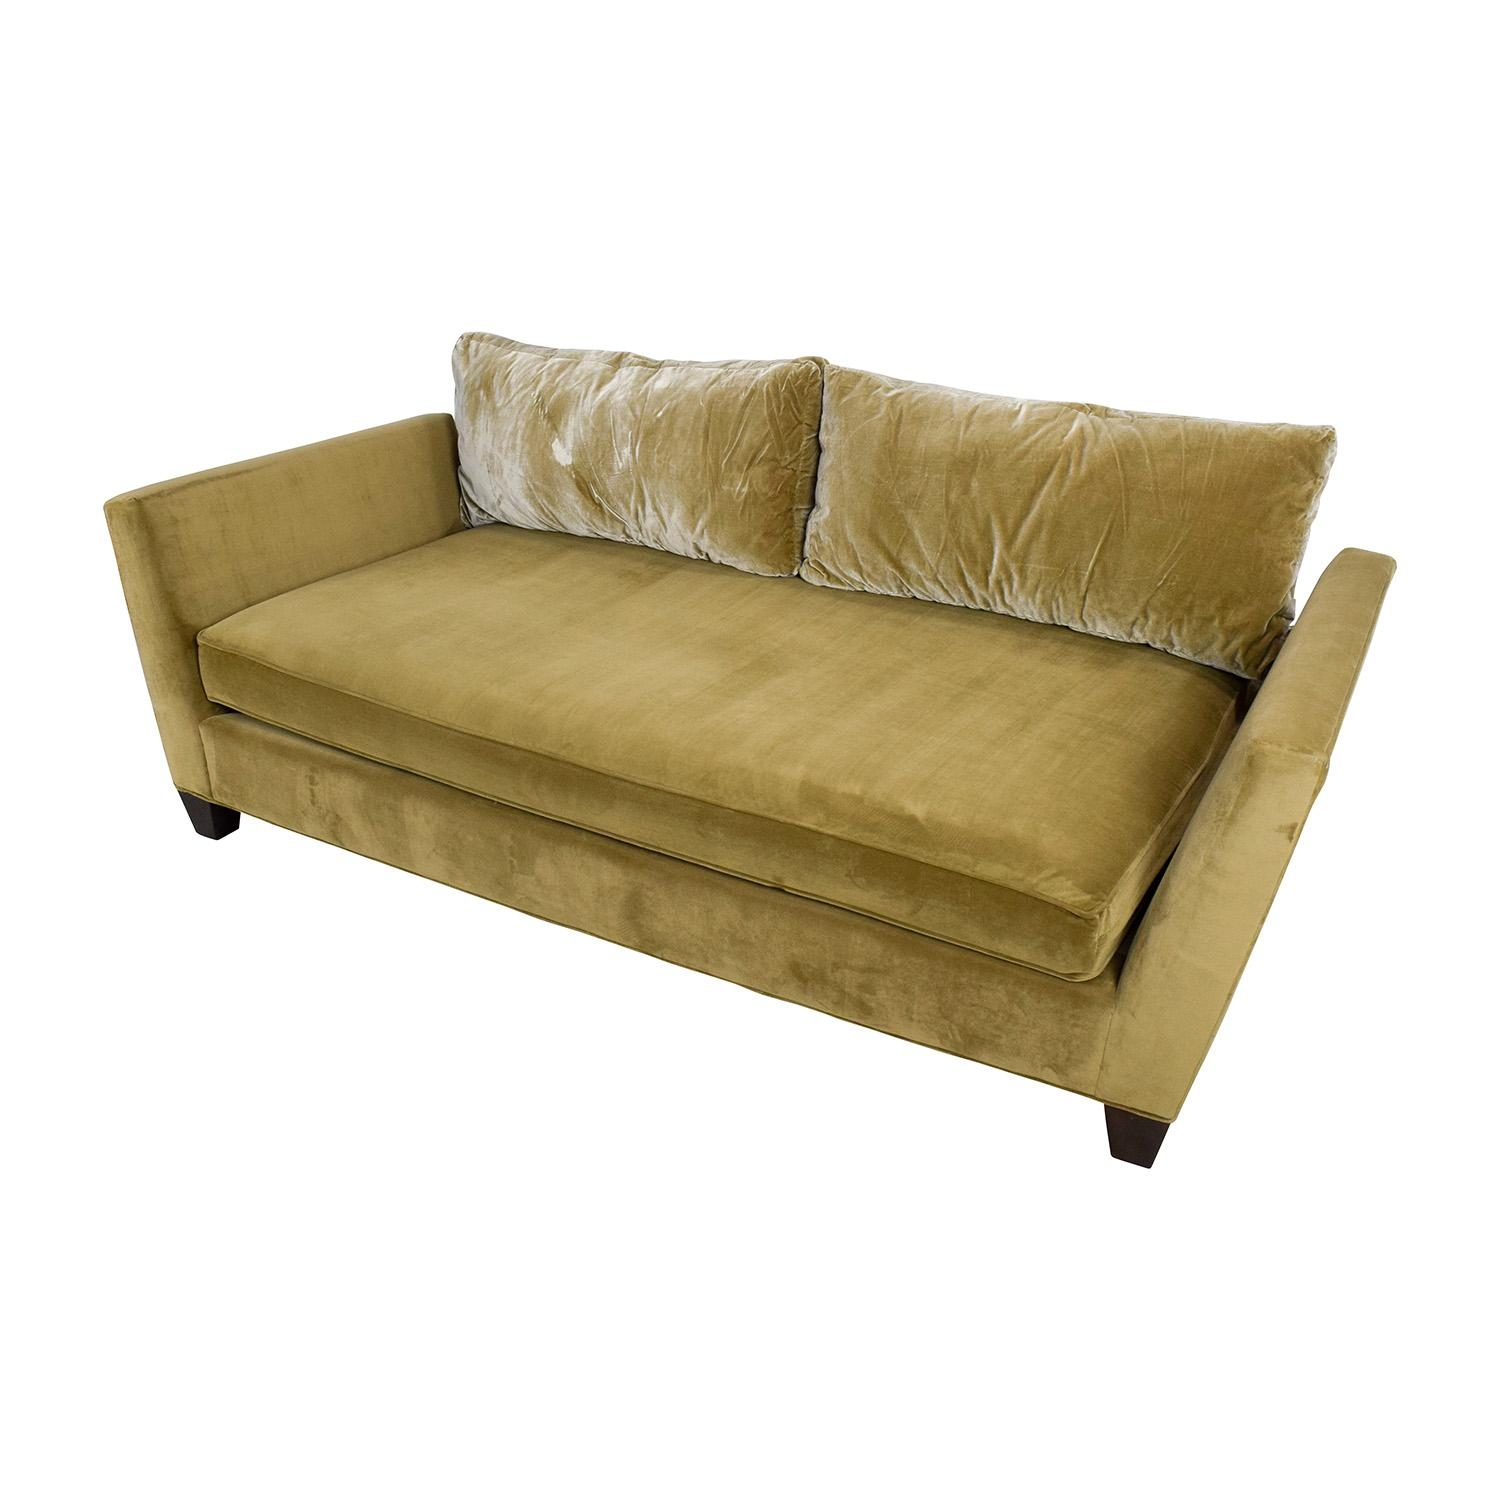 crate and barrel karnes sleeper sofa review 3 cushion slipcover futon